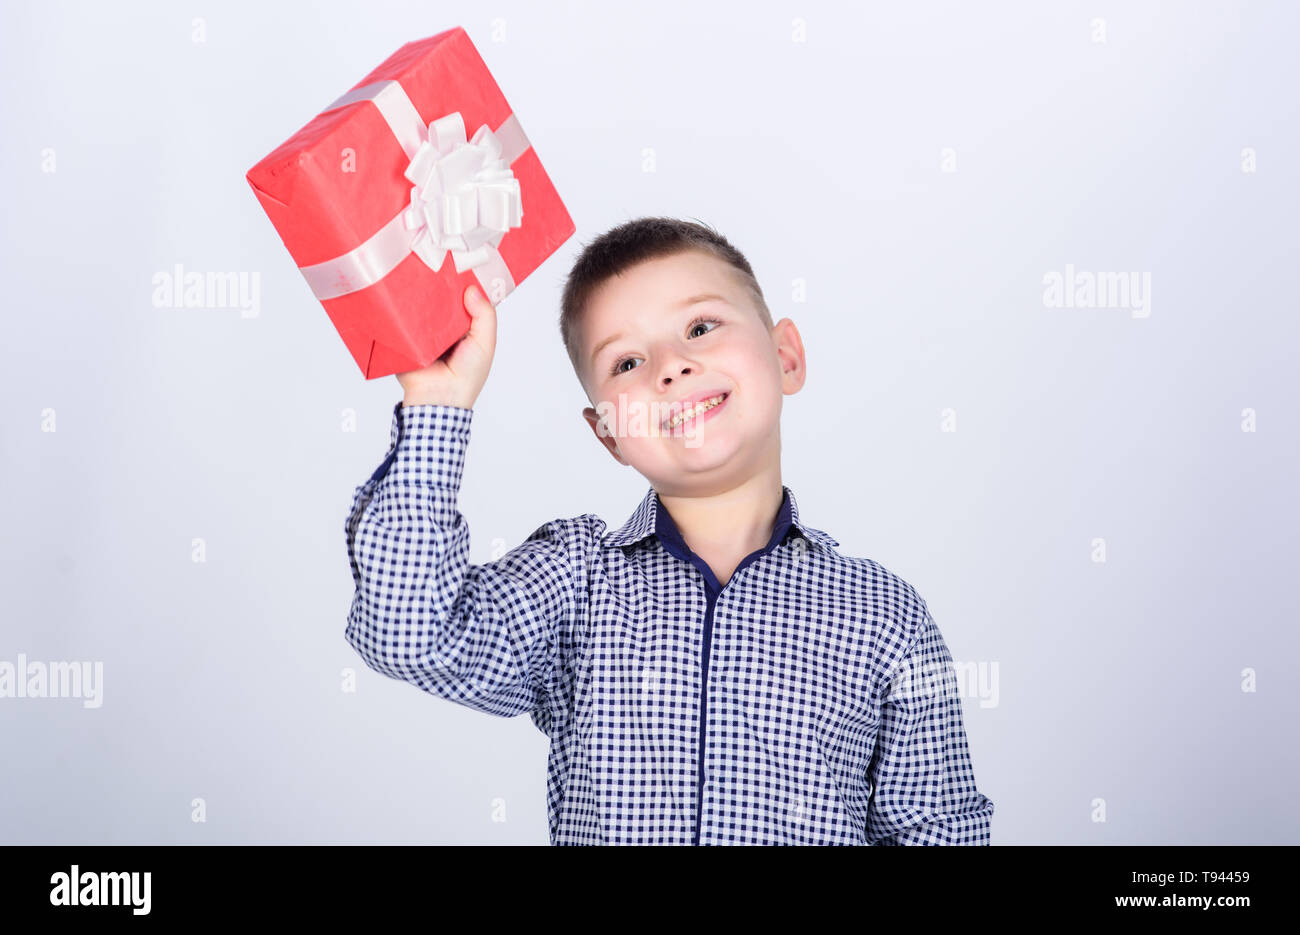 Birthday Gift Boy Buy Gifts Child Little Hold Box Christmas Or Holiday Shopping Seasonal Sale